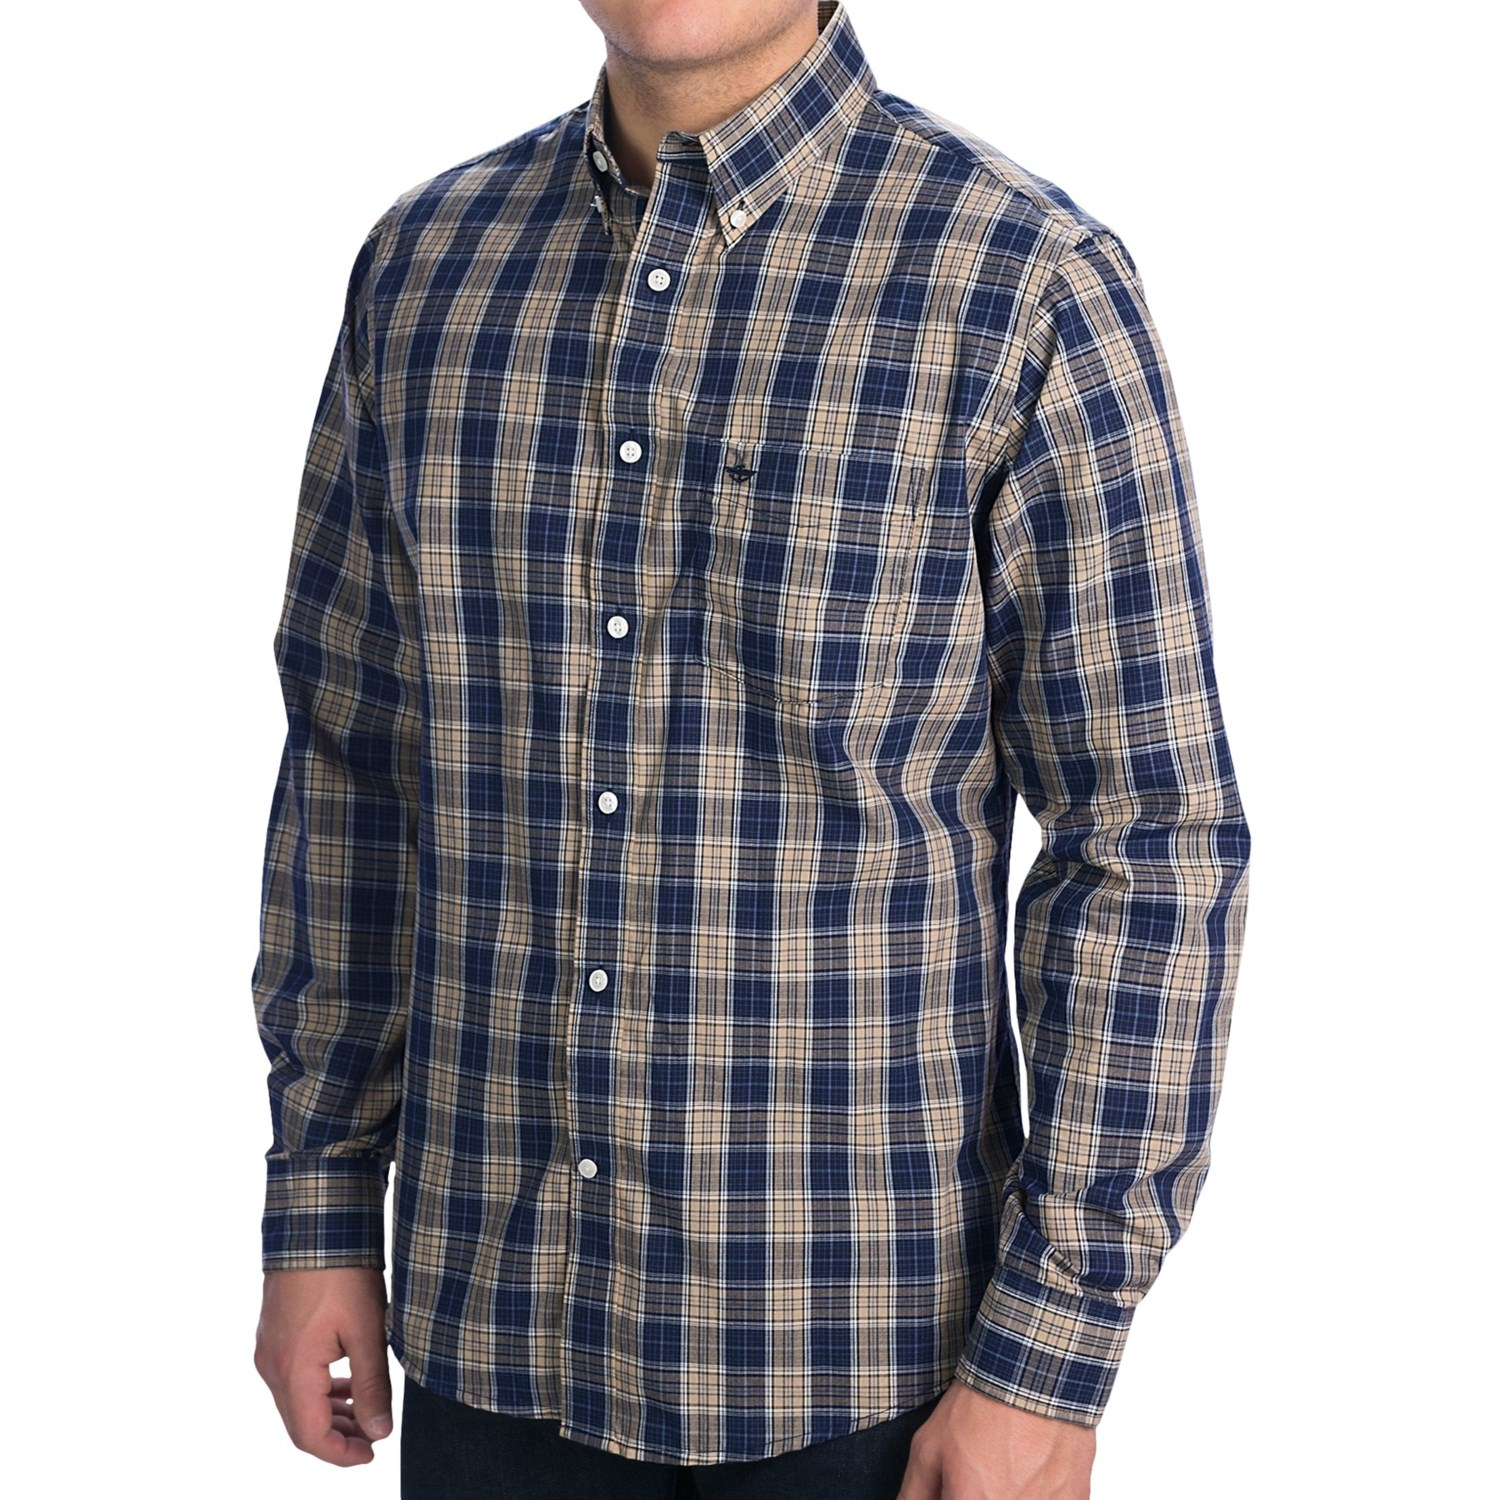 Dockers soft no wrinkle plaid shirt long sleeve for men for Dockers wrinkle free shirts